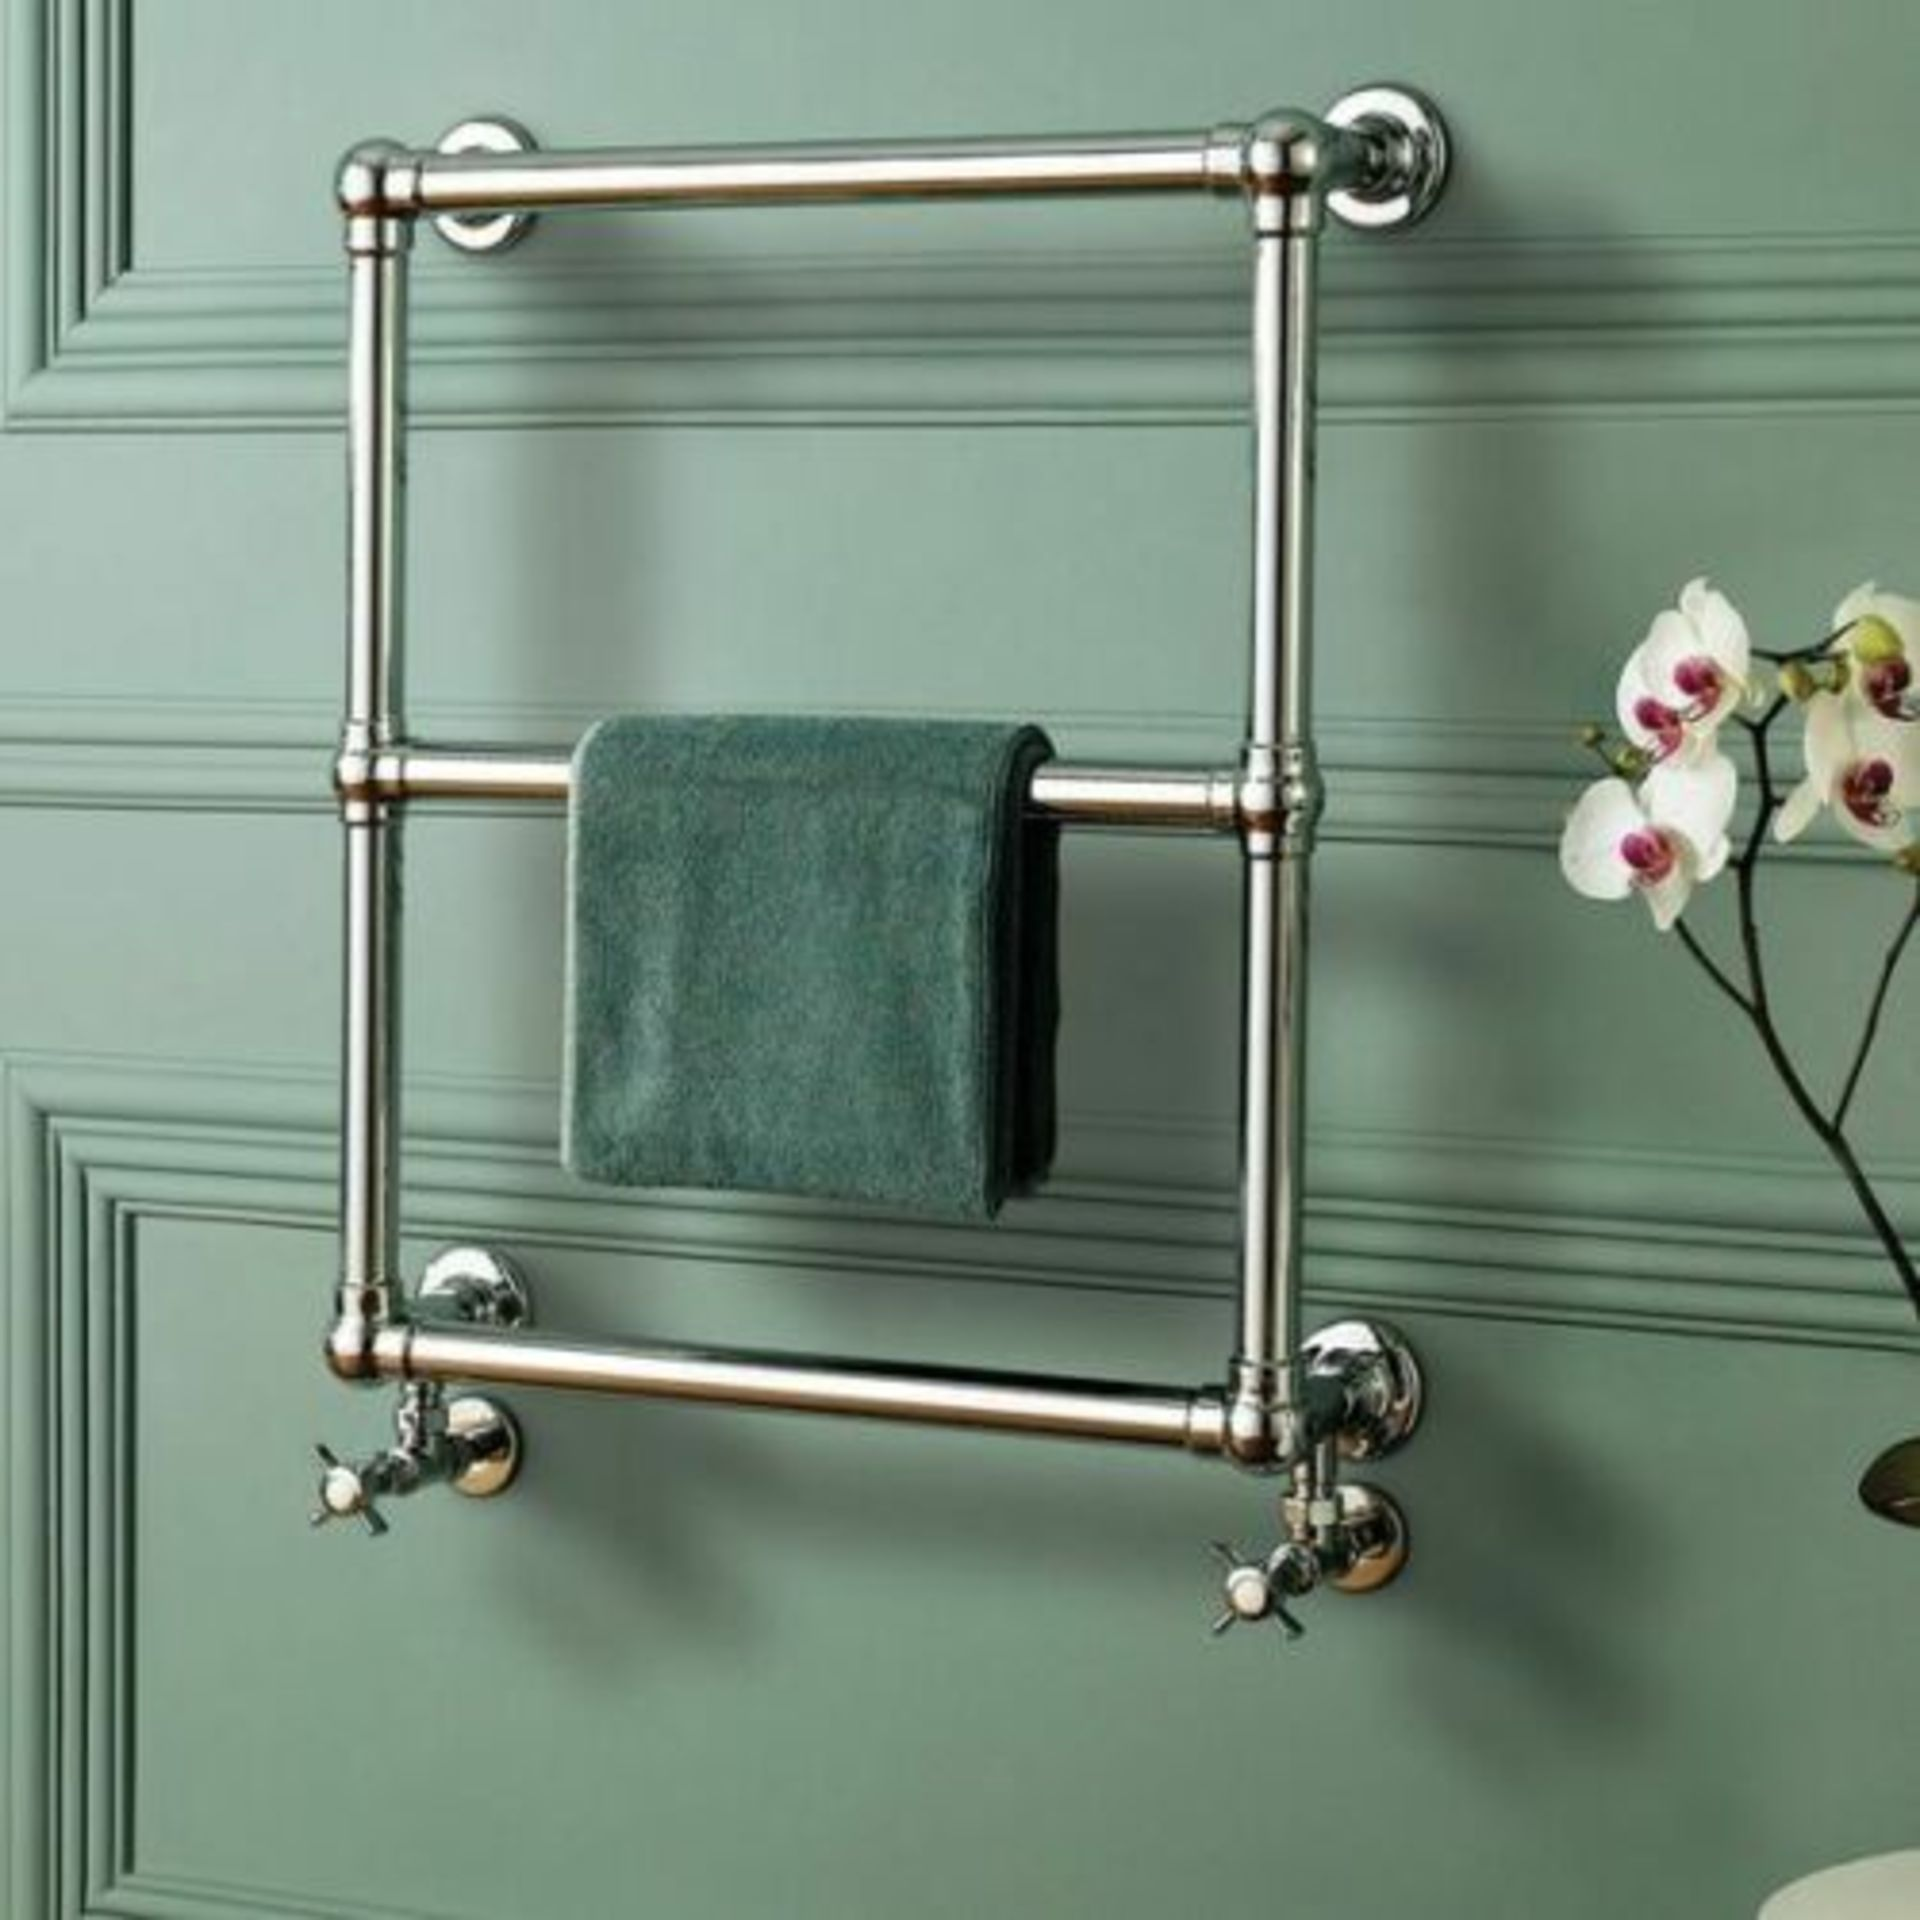 Lot 20 - Fervent Traditional Ball Jointed Towel Radiator 686mm x 600mm Brand new, factory sealed packaging.